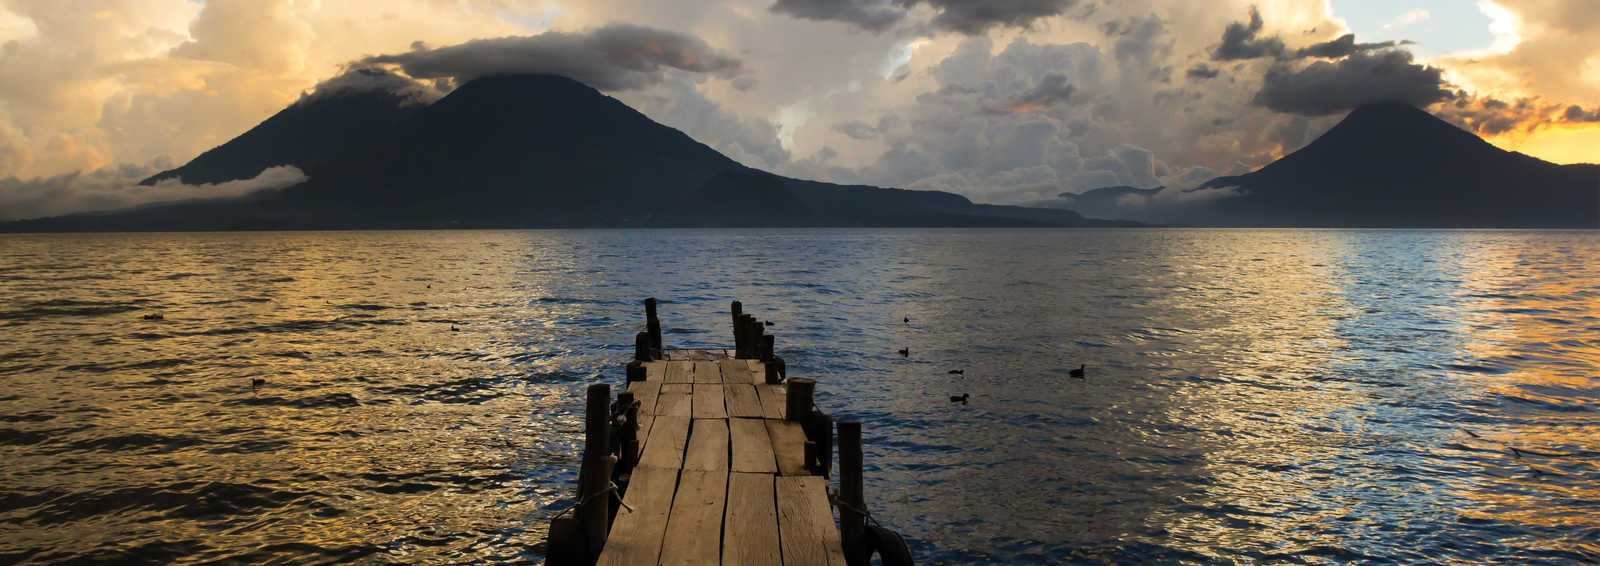 Sunset on Lake Atitlan, Guatemala